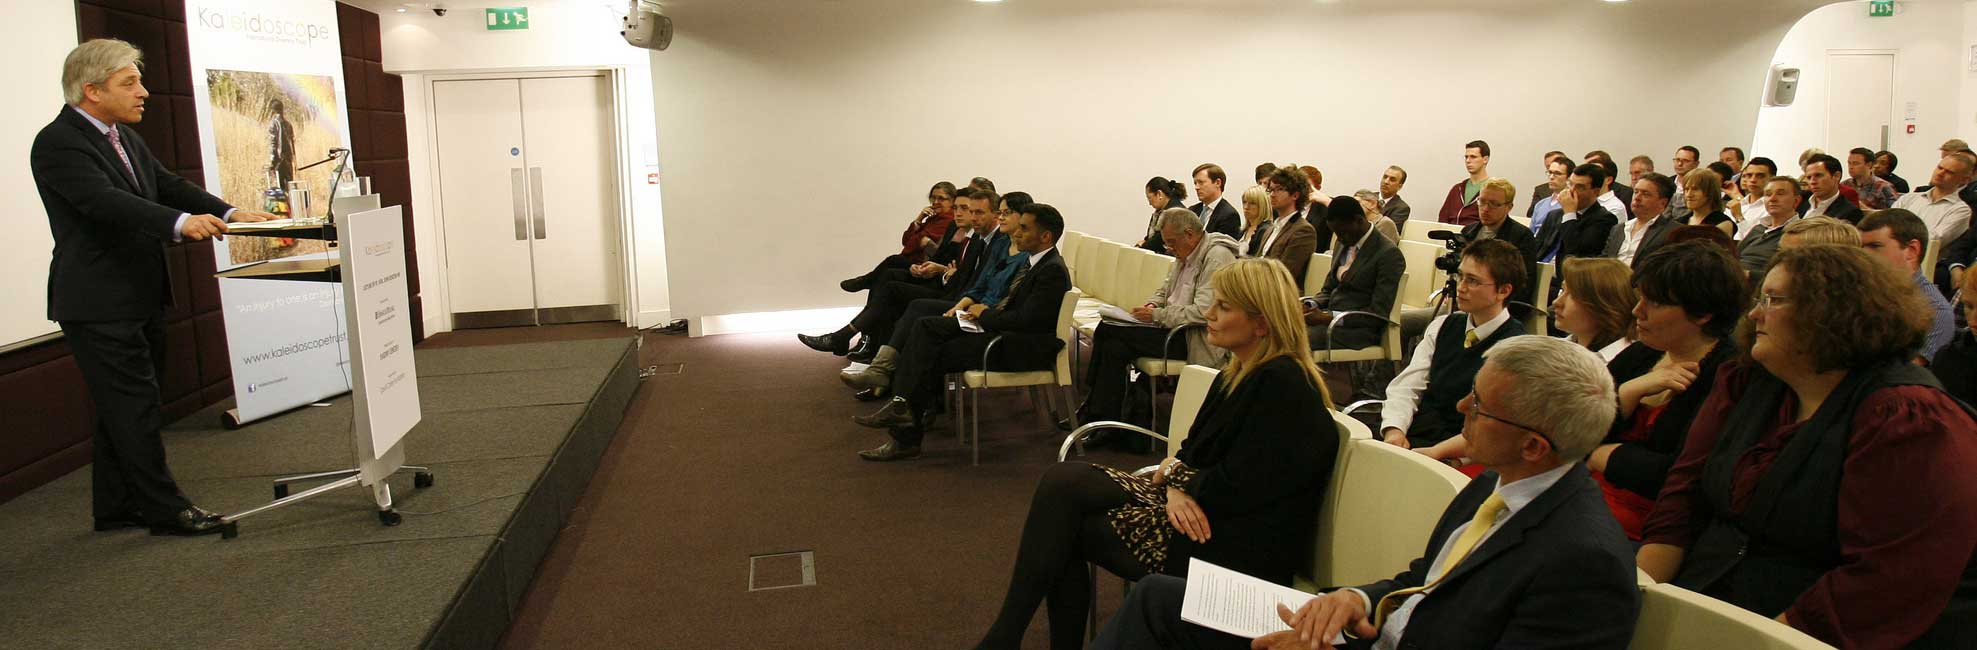 John Bercow addresses Kaleidoscope Trust. (Photo courtesy of Kaleidoscope Trust)